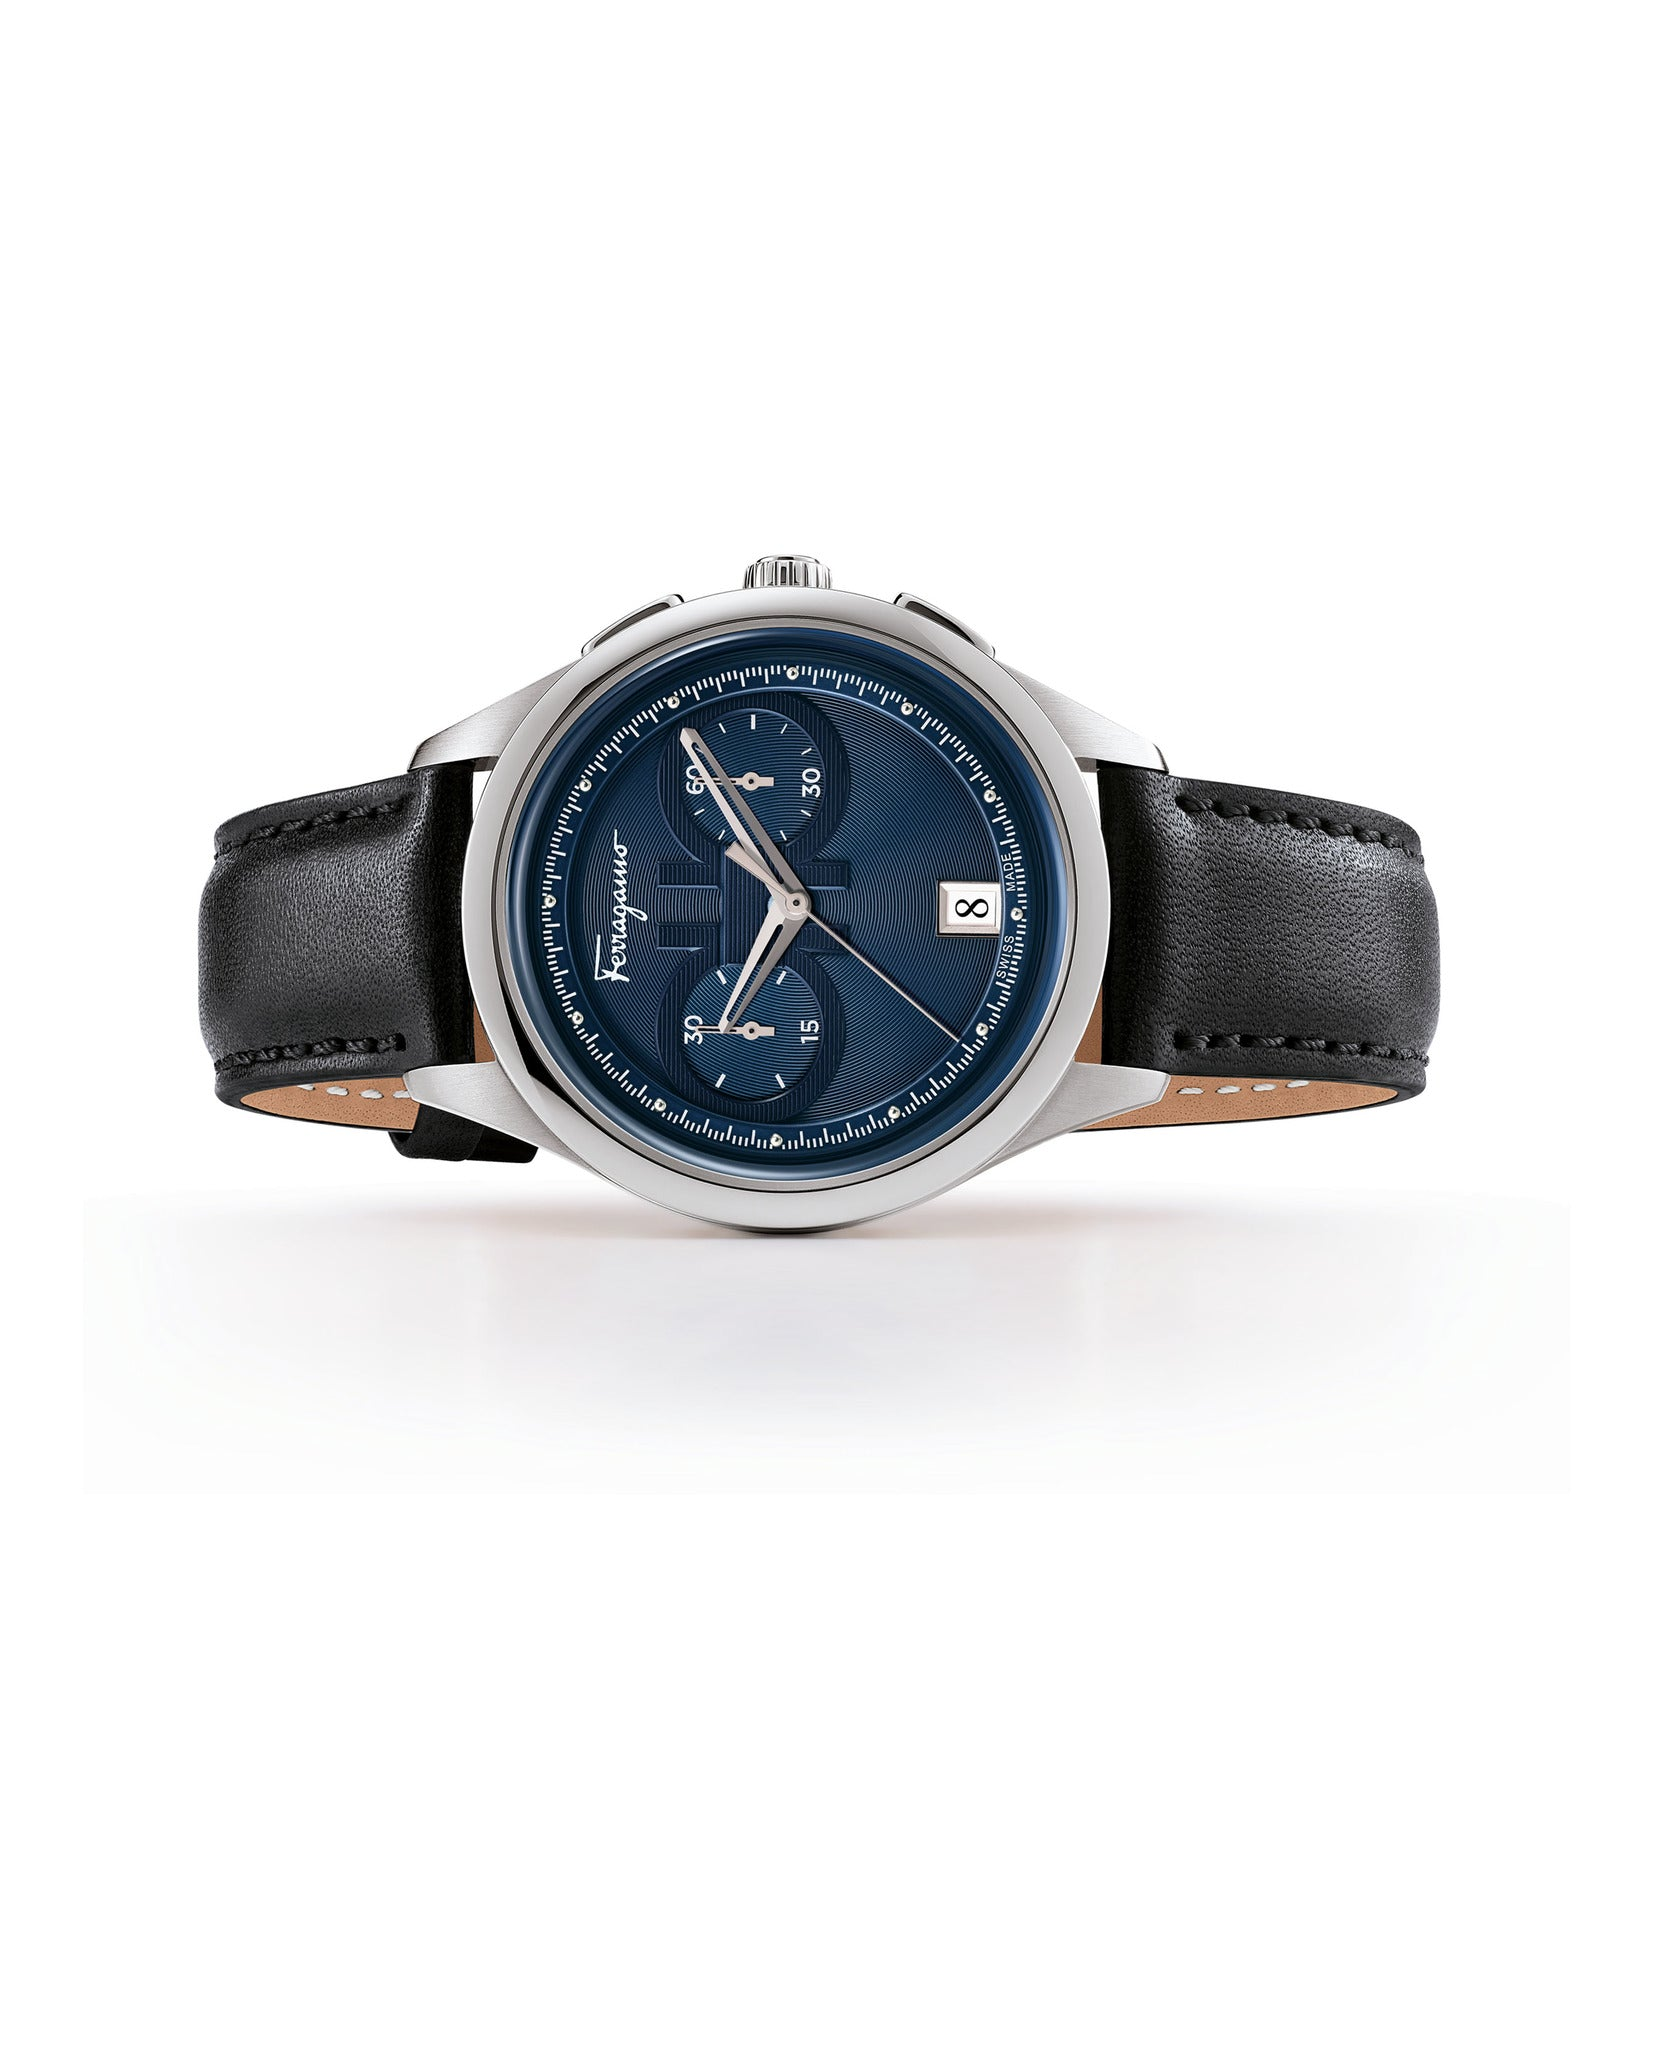 Ferragamo Racing Chronograph Watch